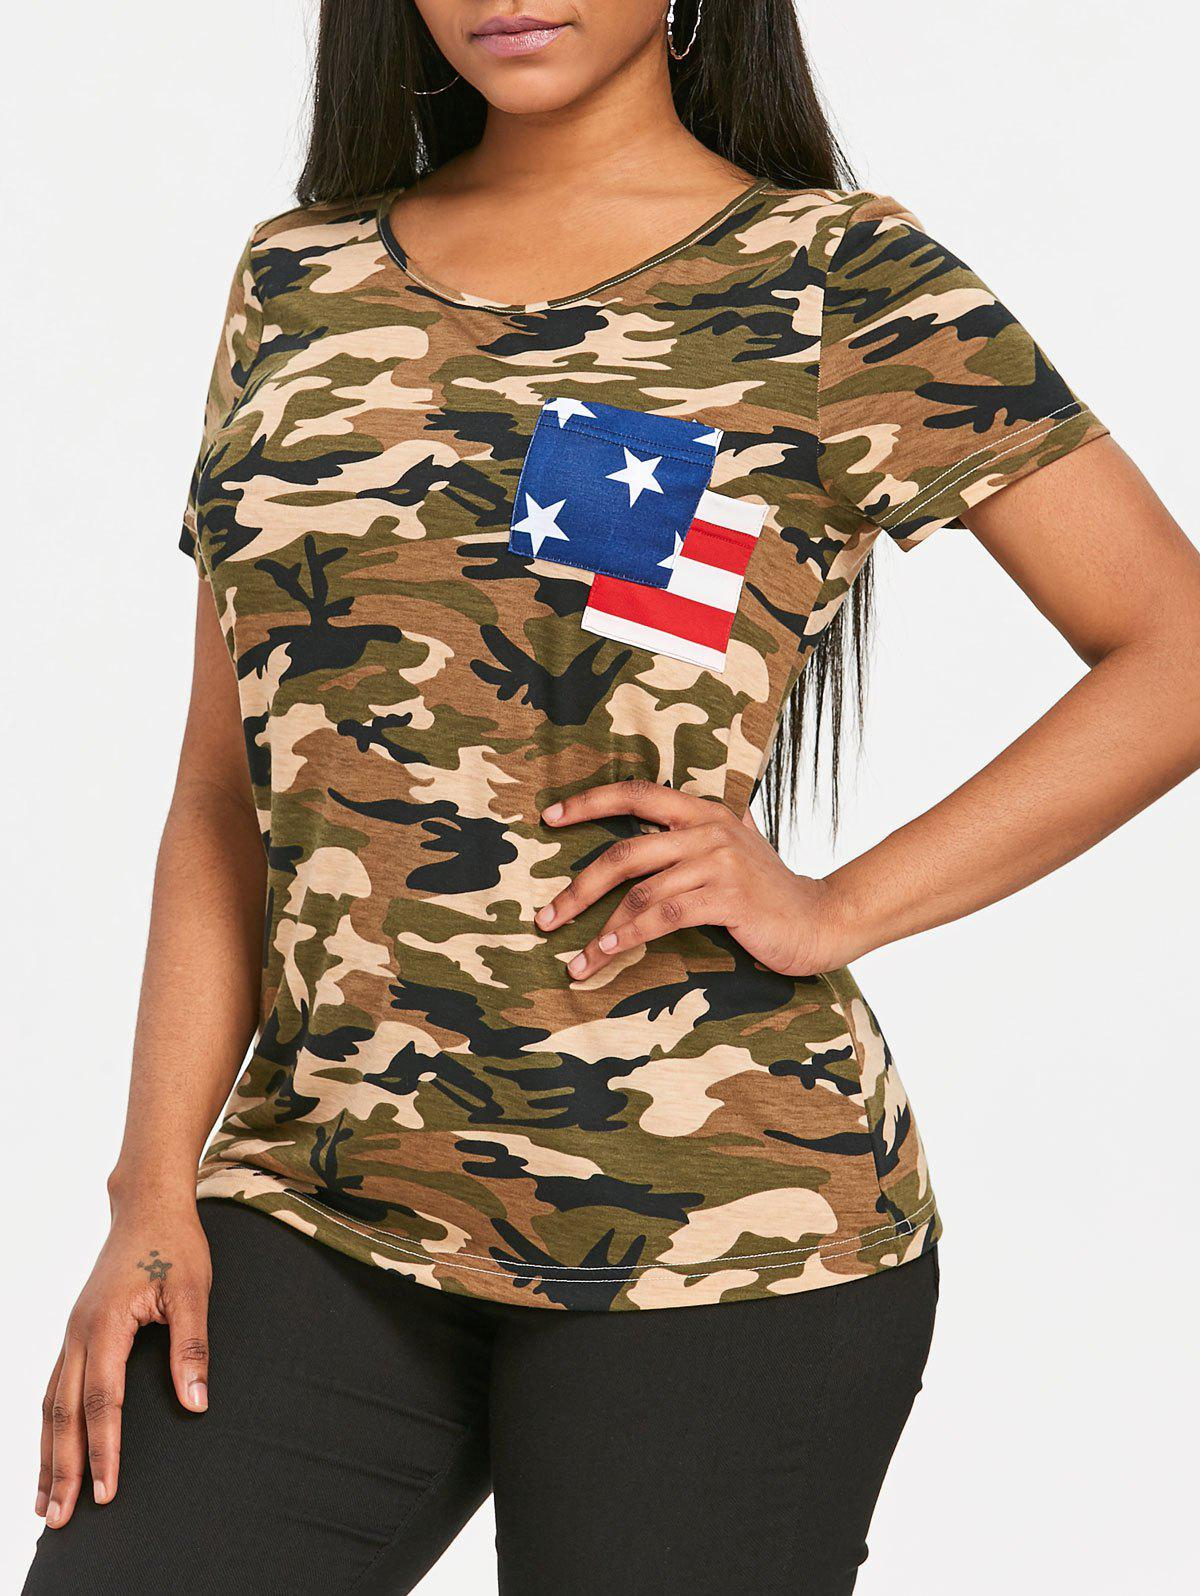 Discount Patriotic Camo American Flag Pocket T-shirt